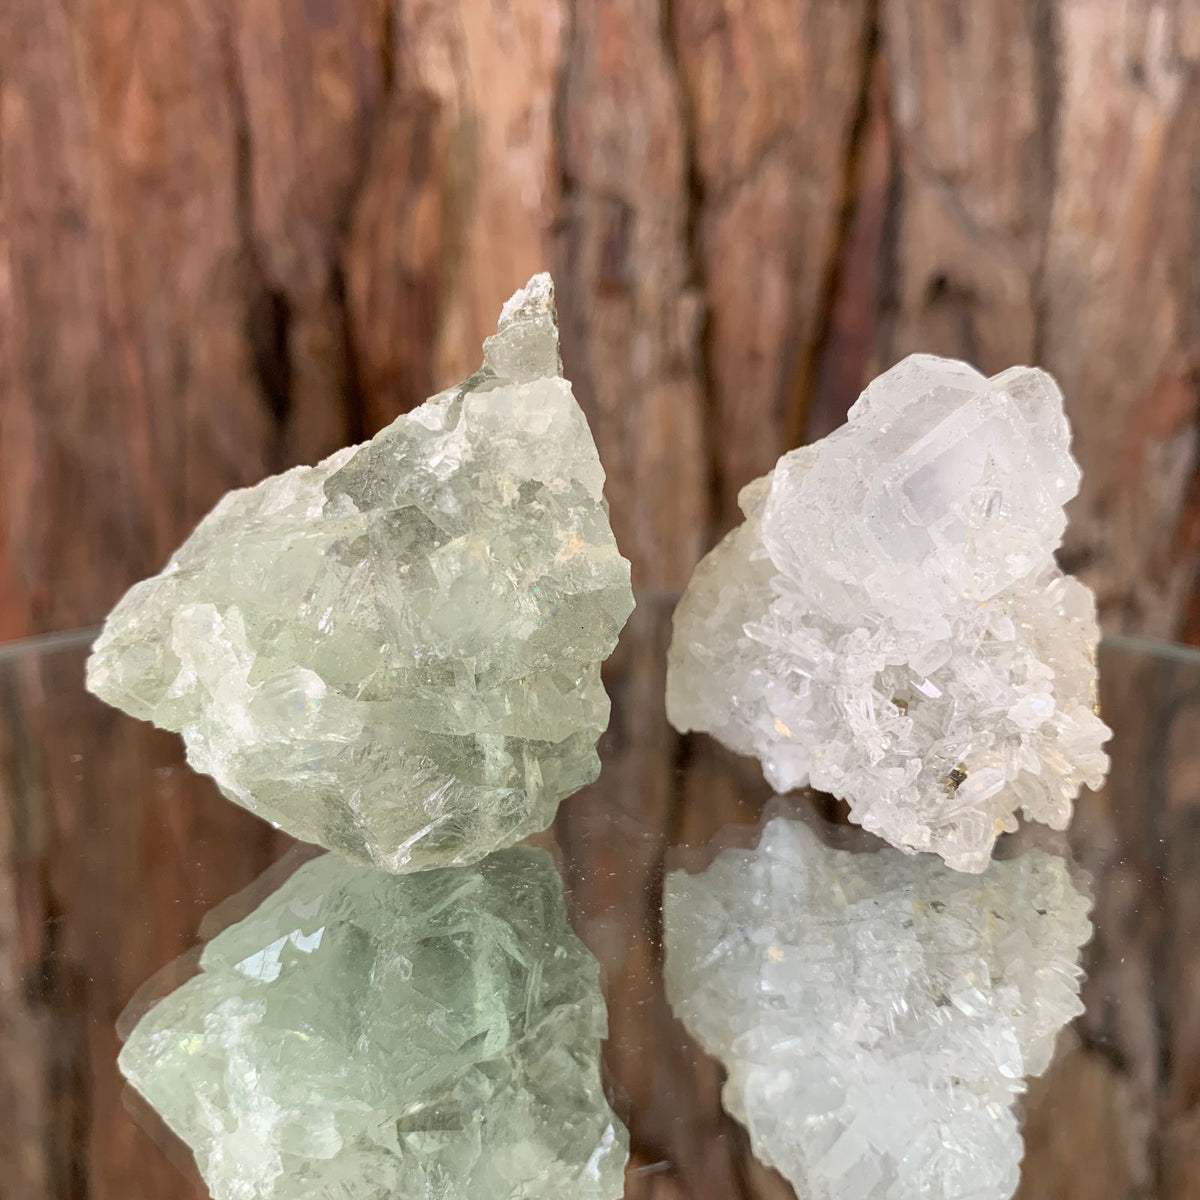 10.8cm 88g Clear Green Fluorite from Xianghualing, China